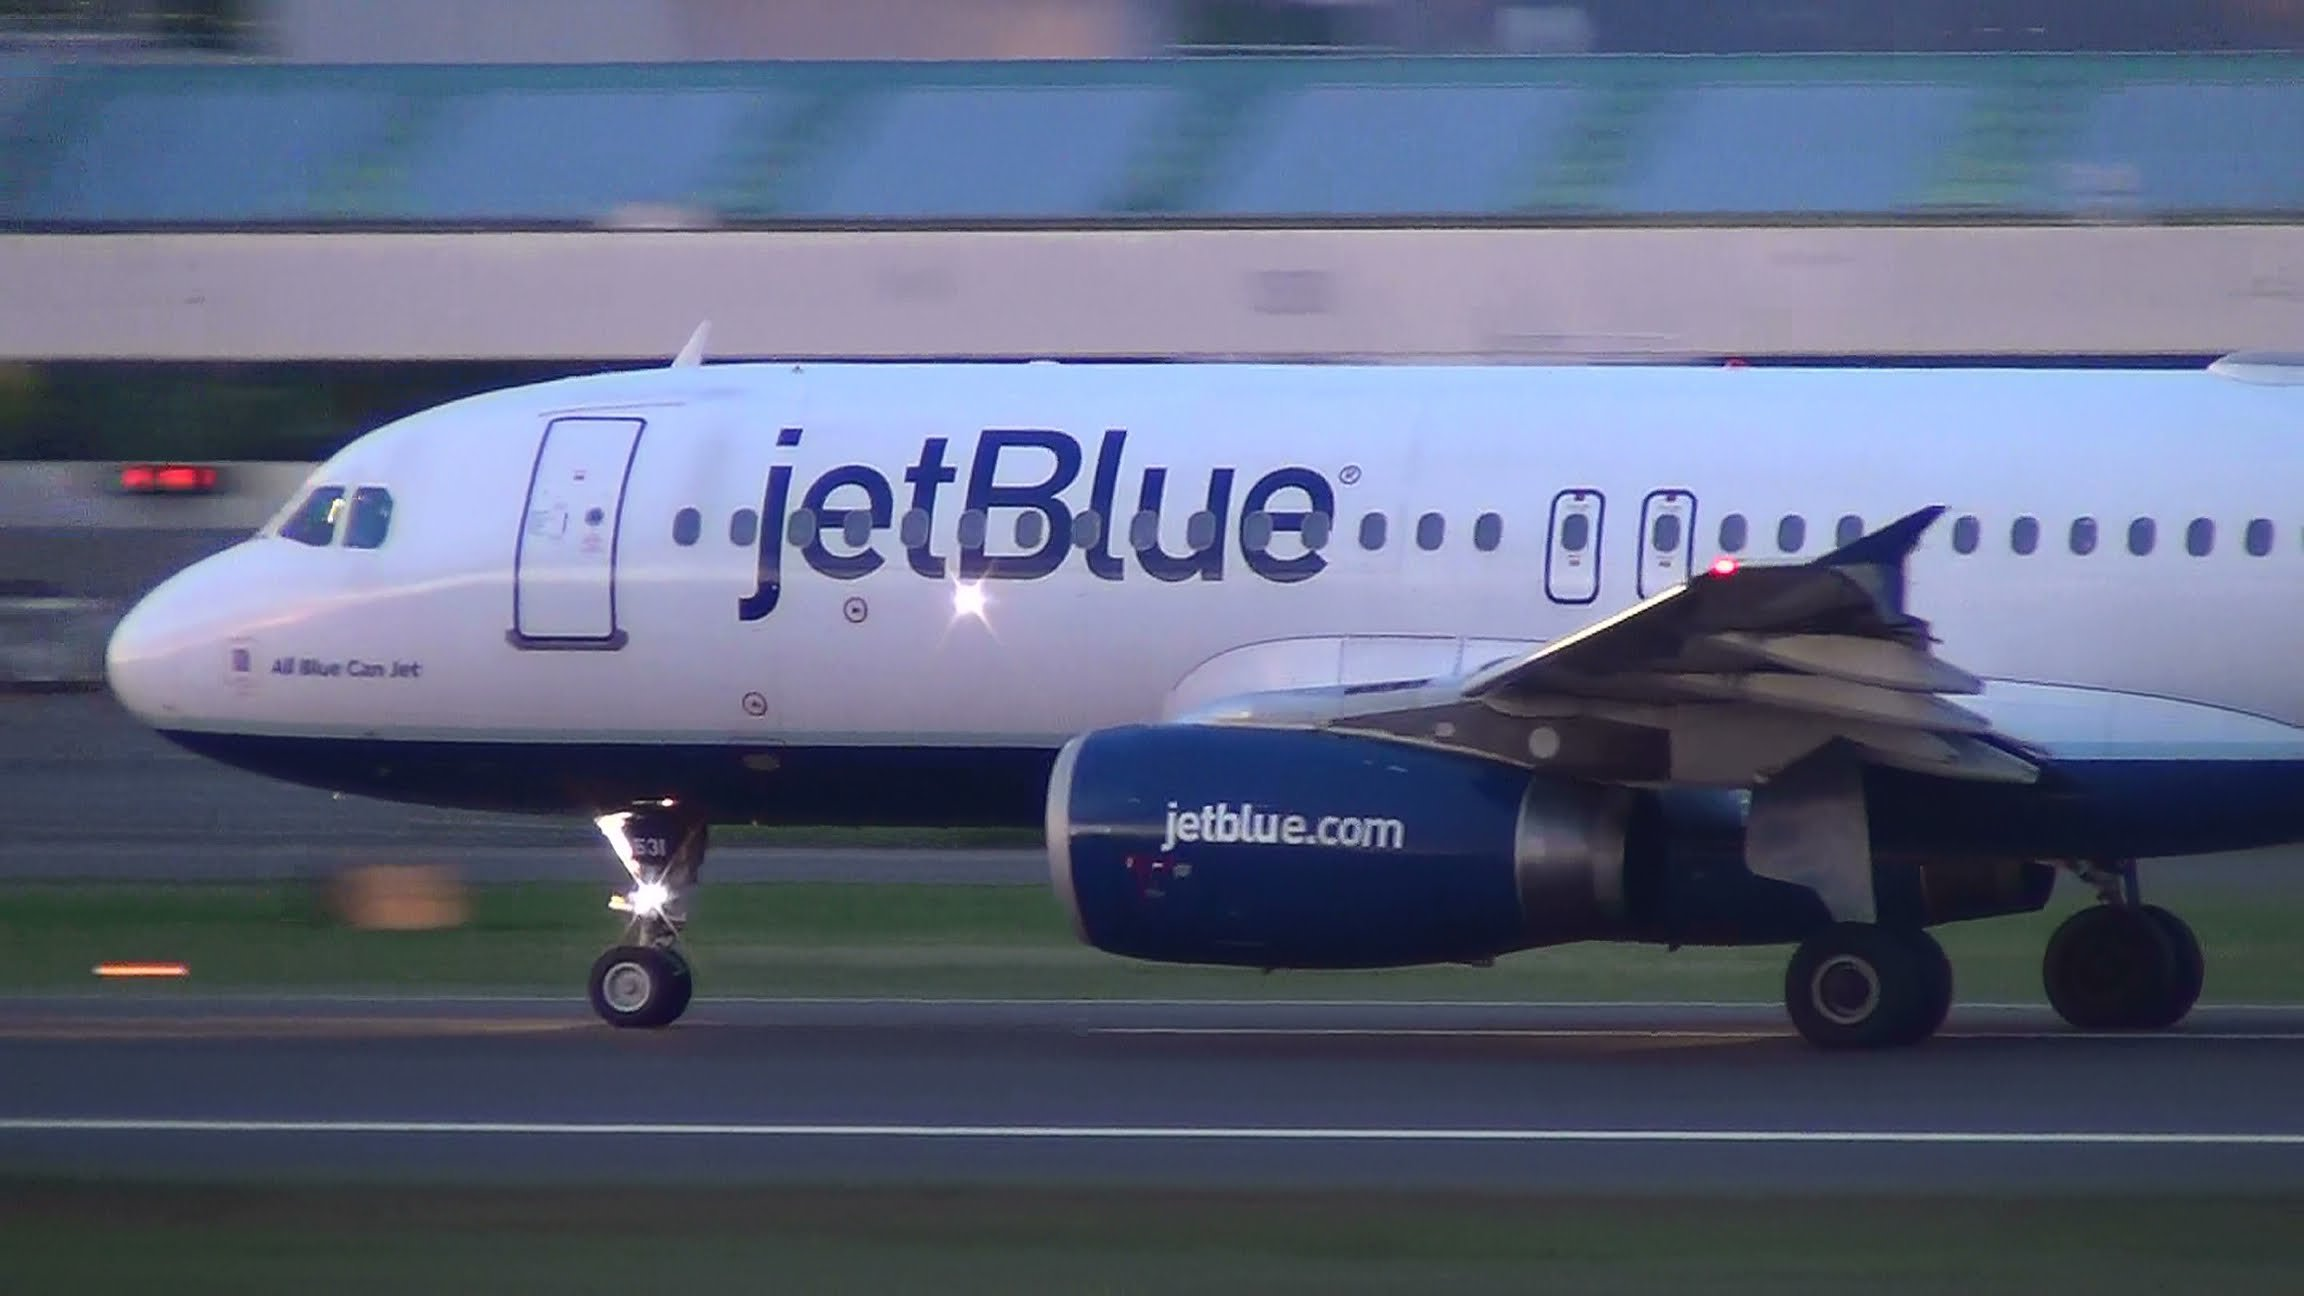 there 39 s only three hours left on this crazy flash sale jetblue 39 s selling 39 flights. Black Bedroom Furniture Sets. Home Design Ideas